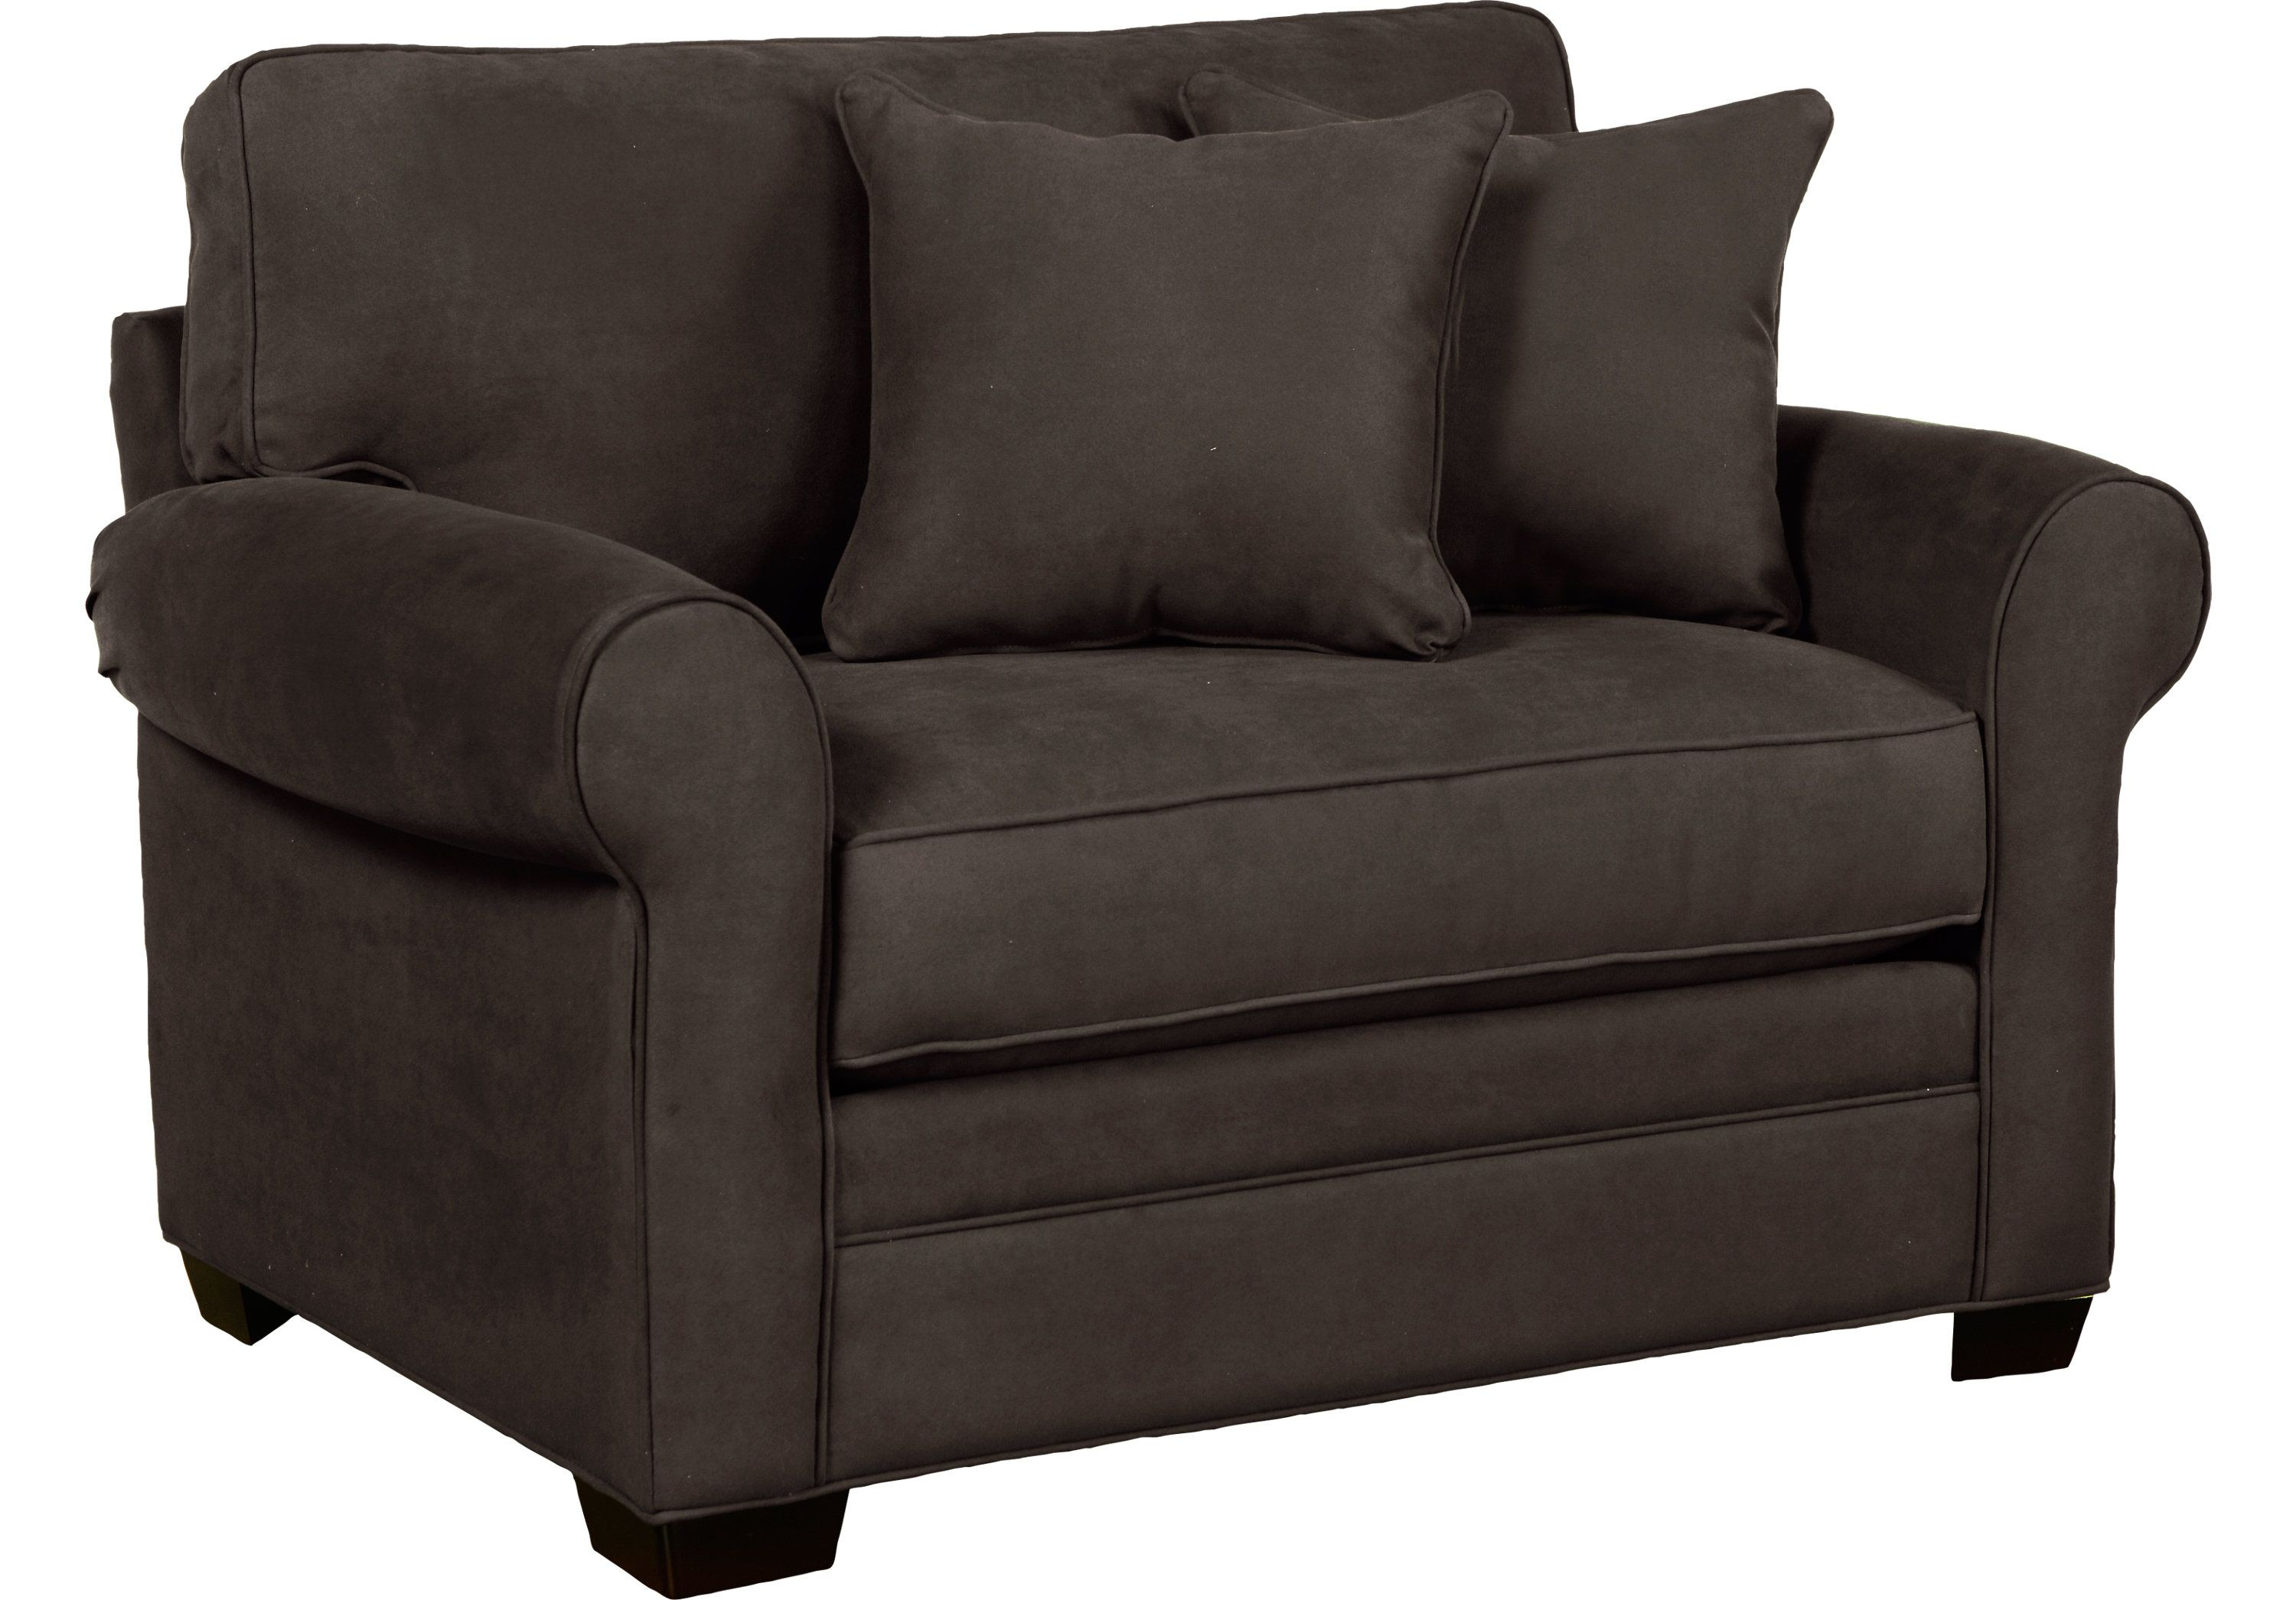 Cindy Crawford Home Bellingham Slate Chair At Home Furniture Store Affordable Furniture Stores Affordable Chair